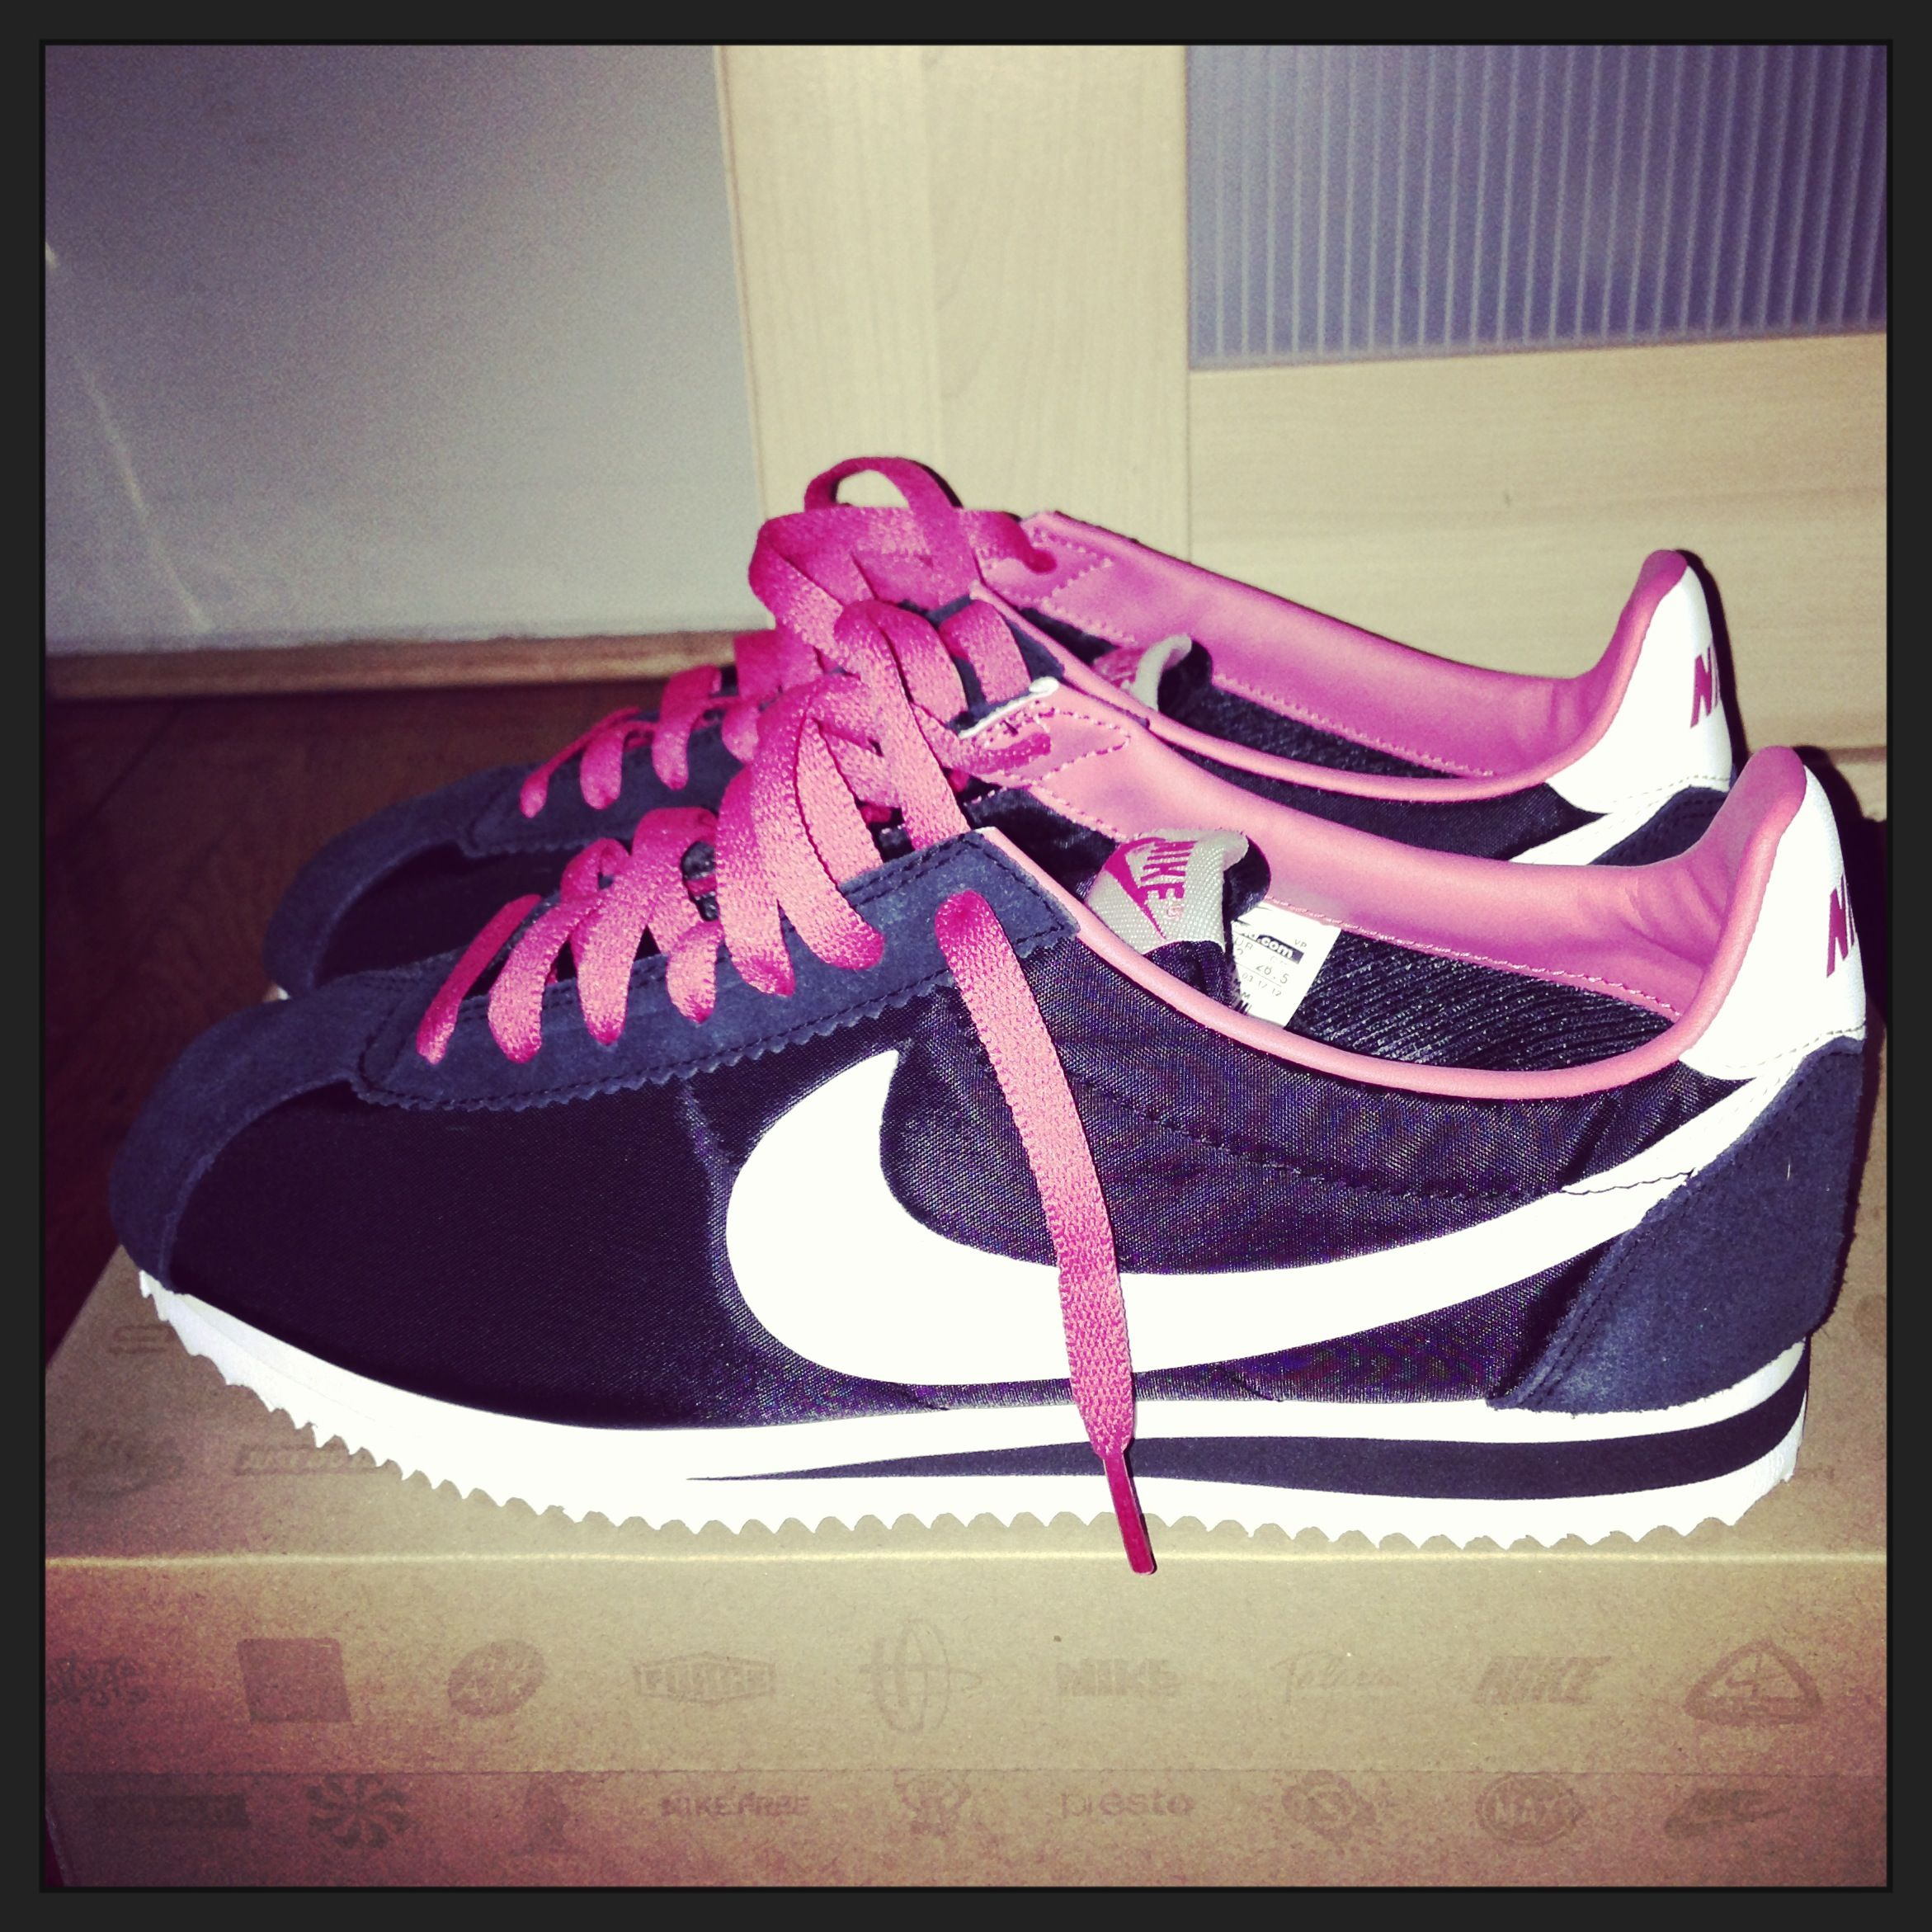 nike shoes camo colors of the different cancers of the body 8395